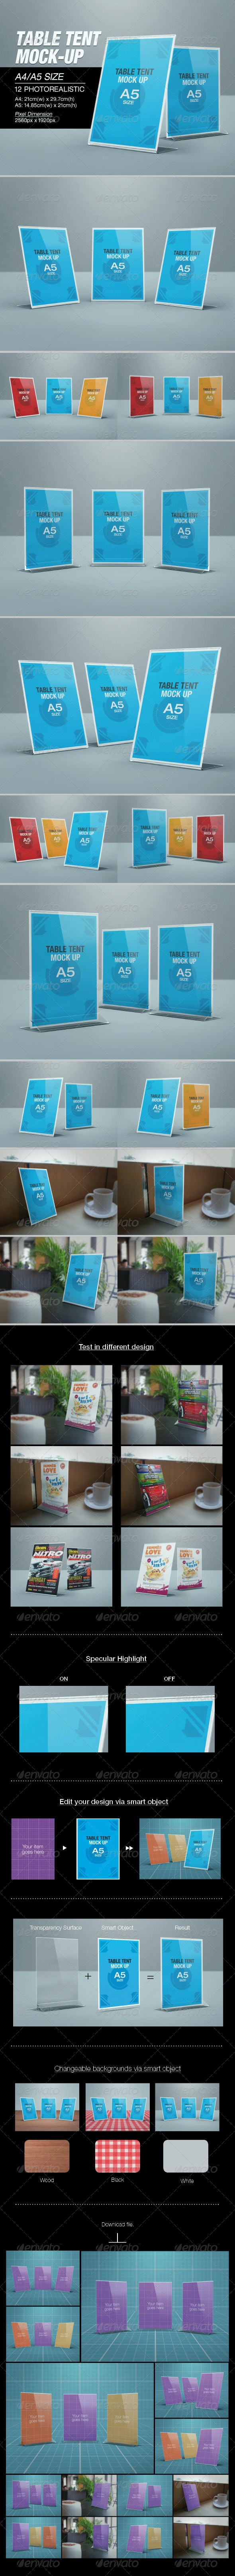 Table Tent Mock-up - Print Product Mock-Ups